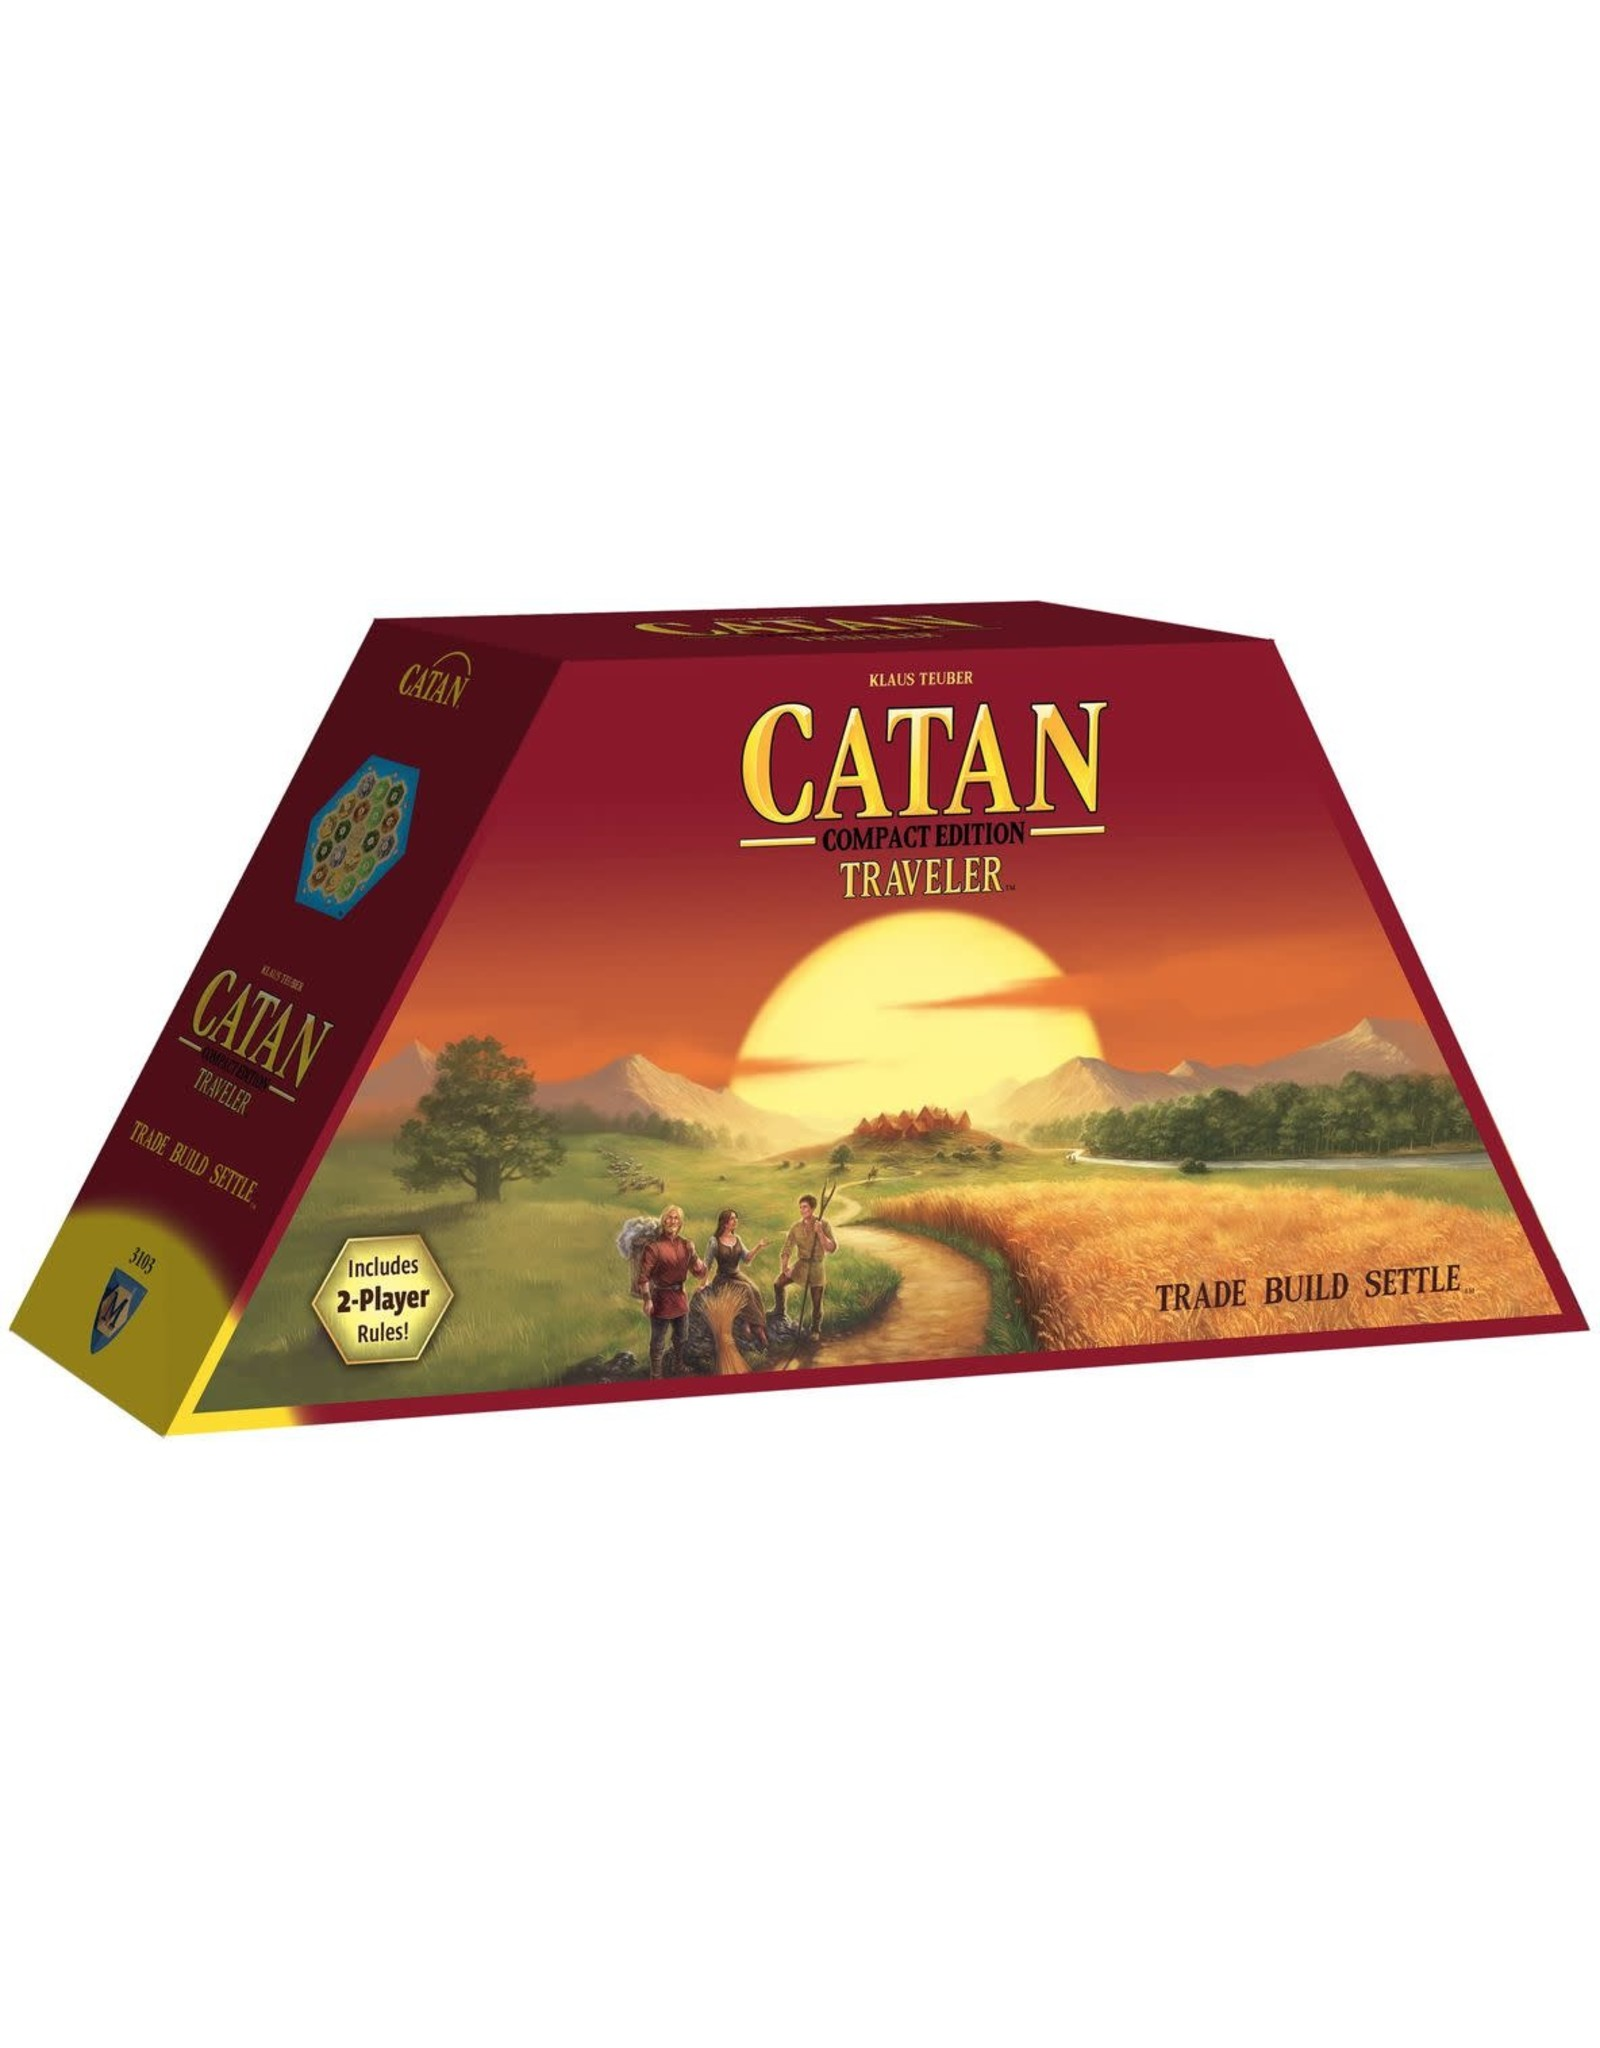 Catan Studio Catan Travel Edition